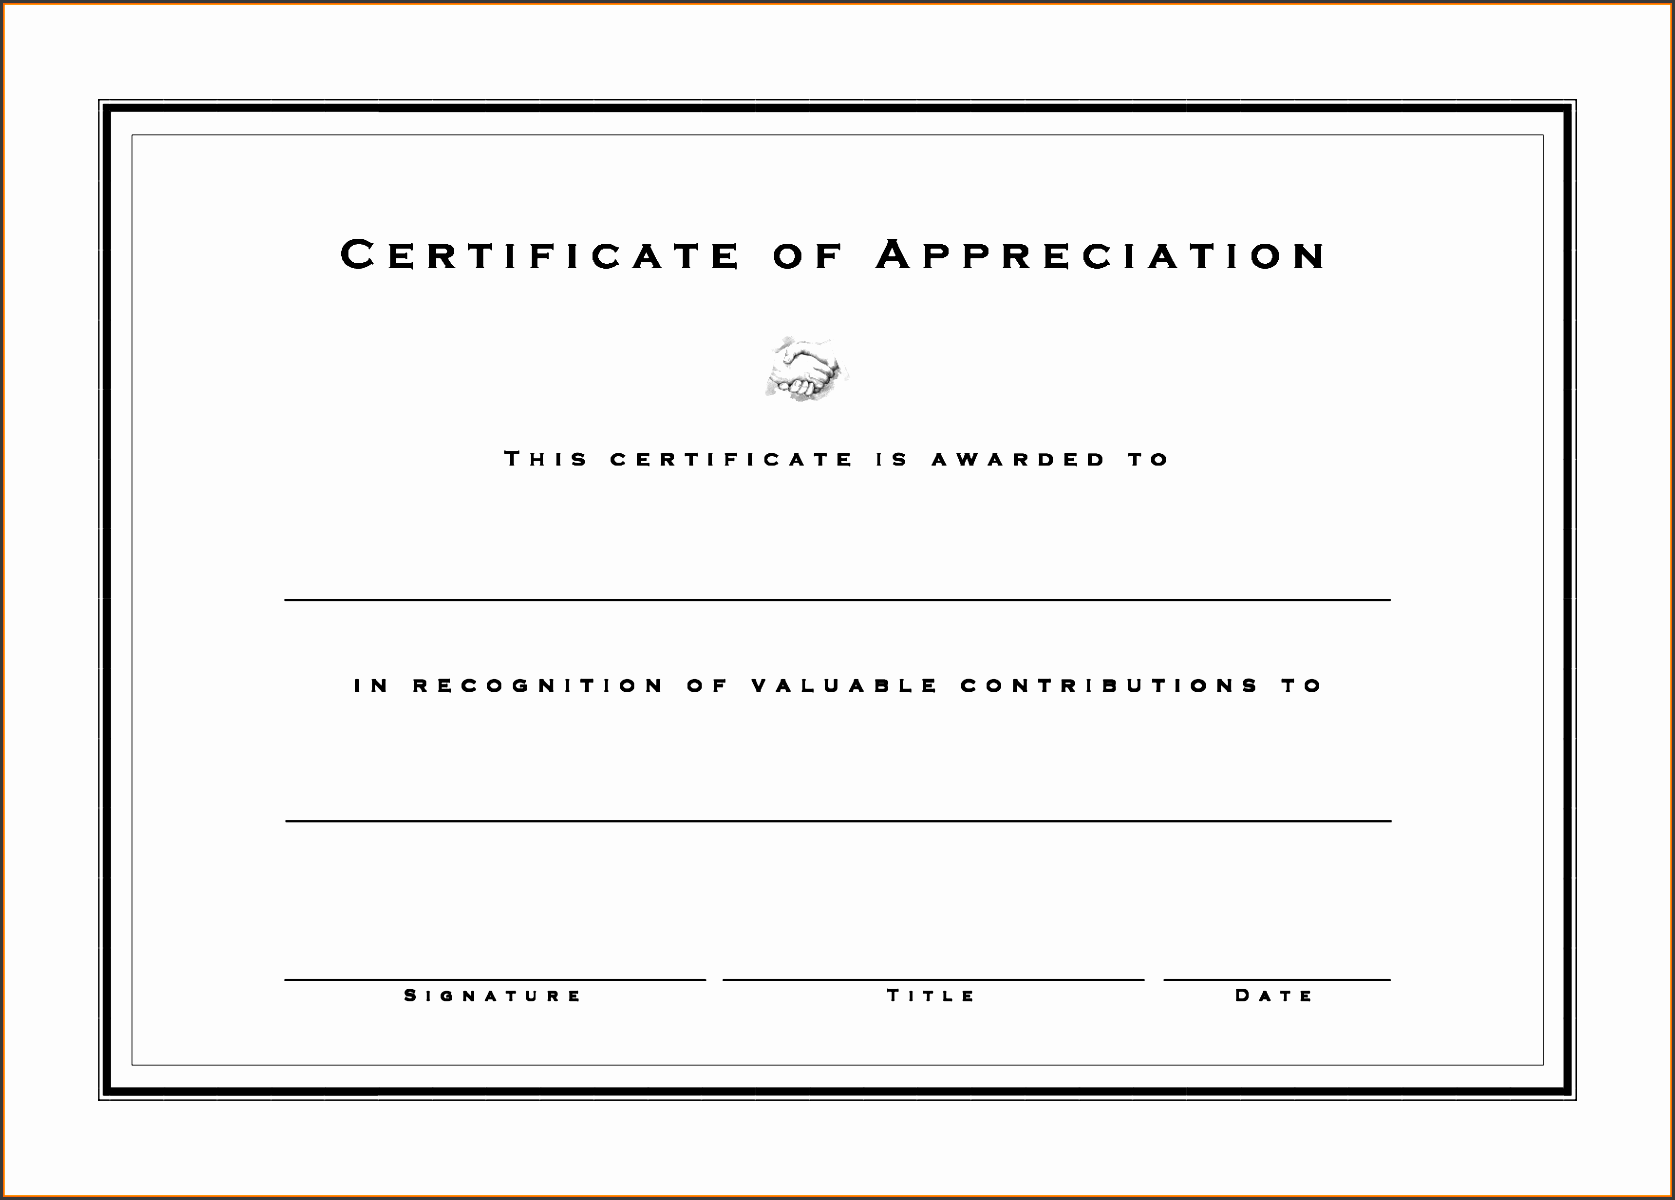 8 how to design certificate of appreciation sampletemplatess free printable basketball certificate templates sports assistant 1betcityfo Gallery